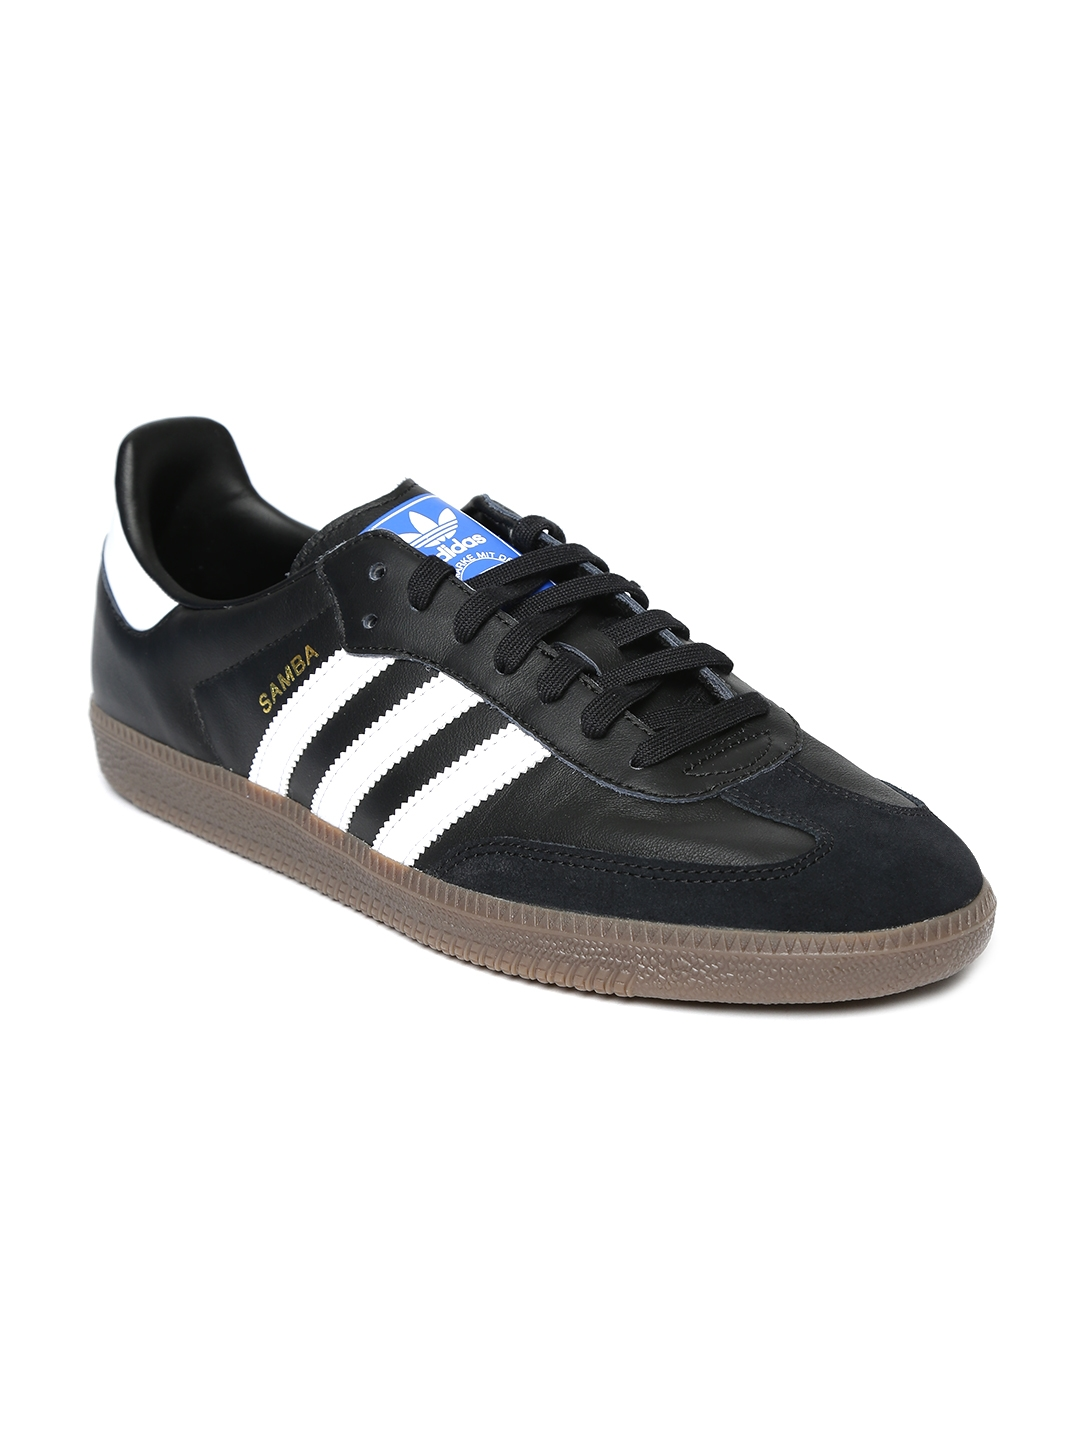 b19e21d3a Buy ADIDAS Originals Men Black Samba OG Leather Casual Shoes ...